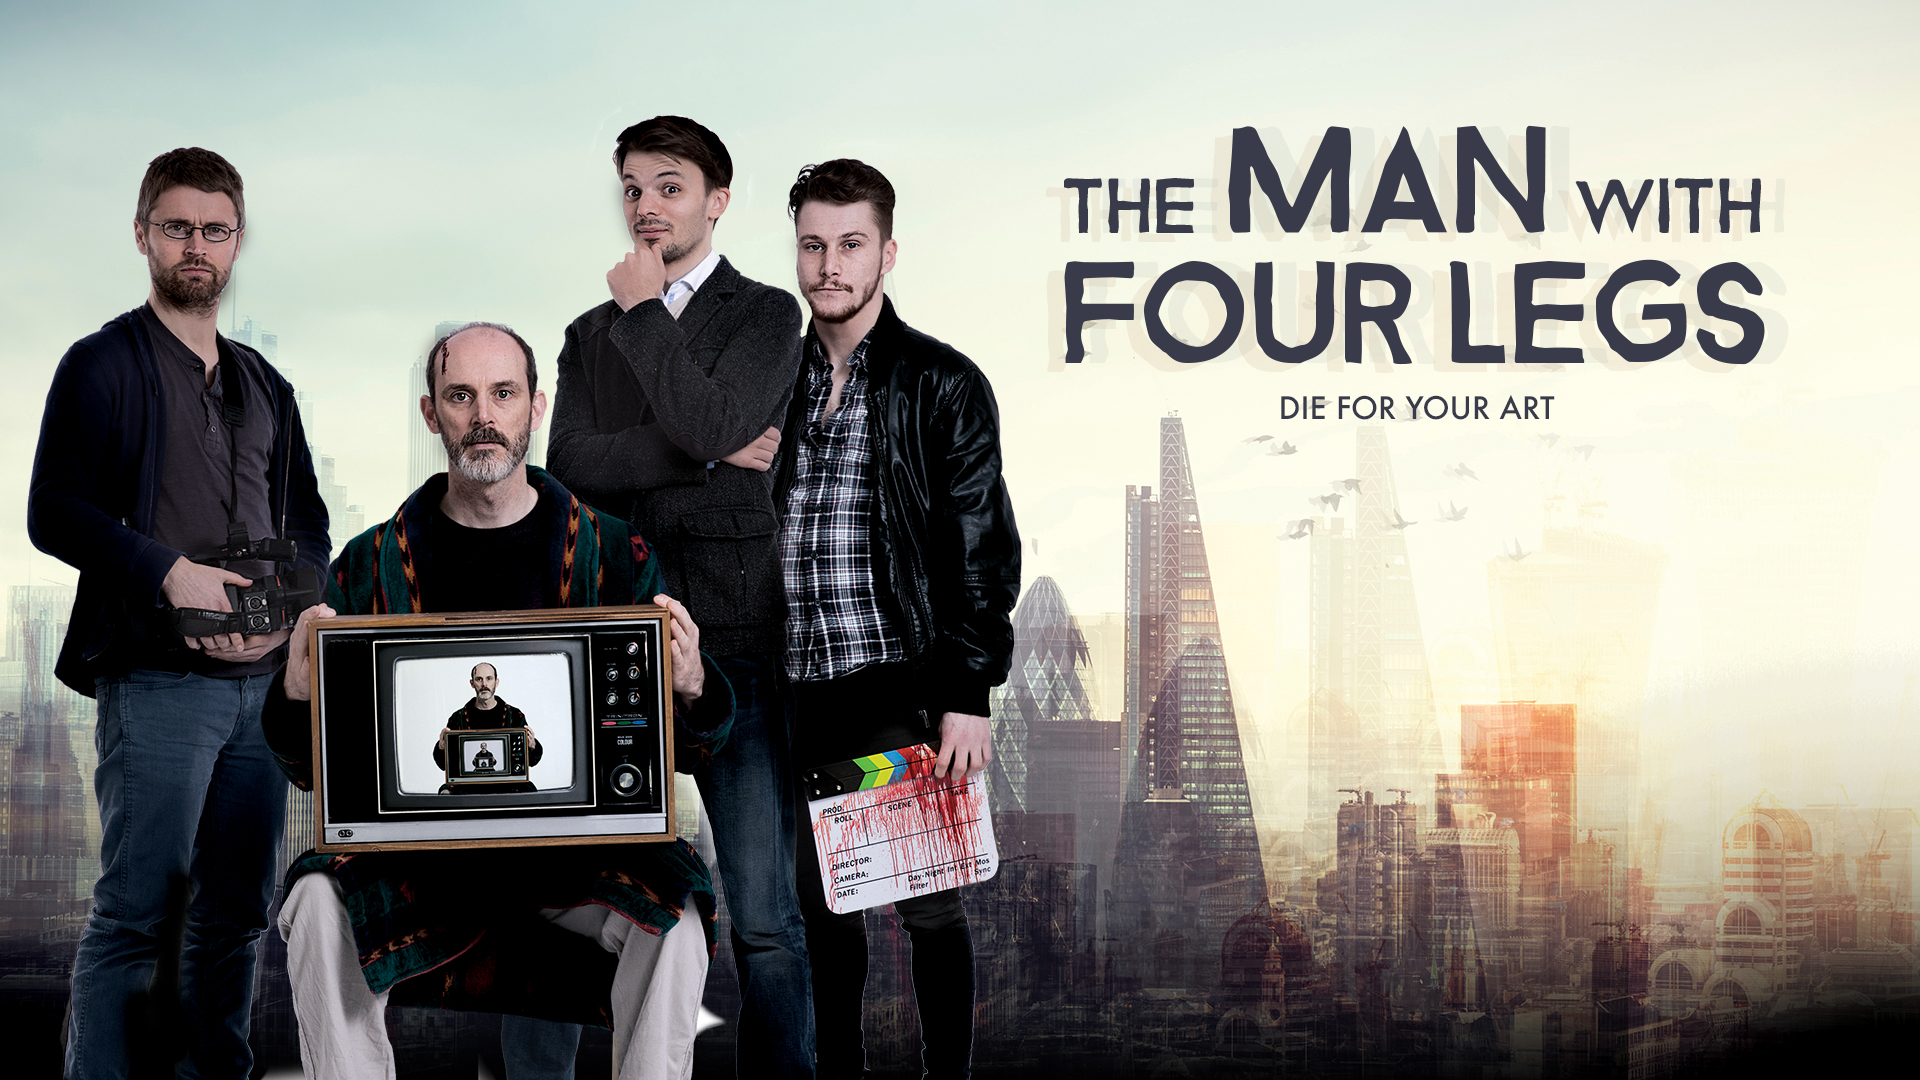 THE MAN WITH FOUR LEGS - FEATURE FILM